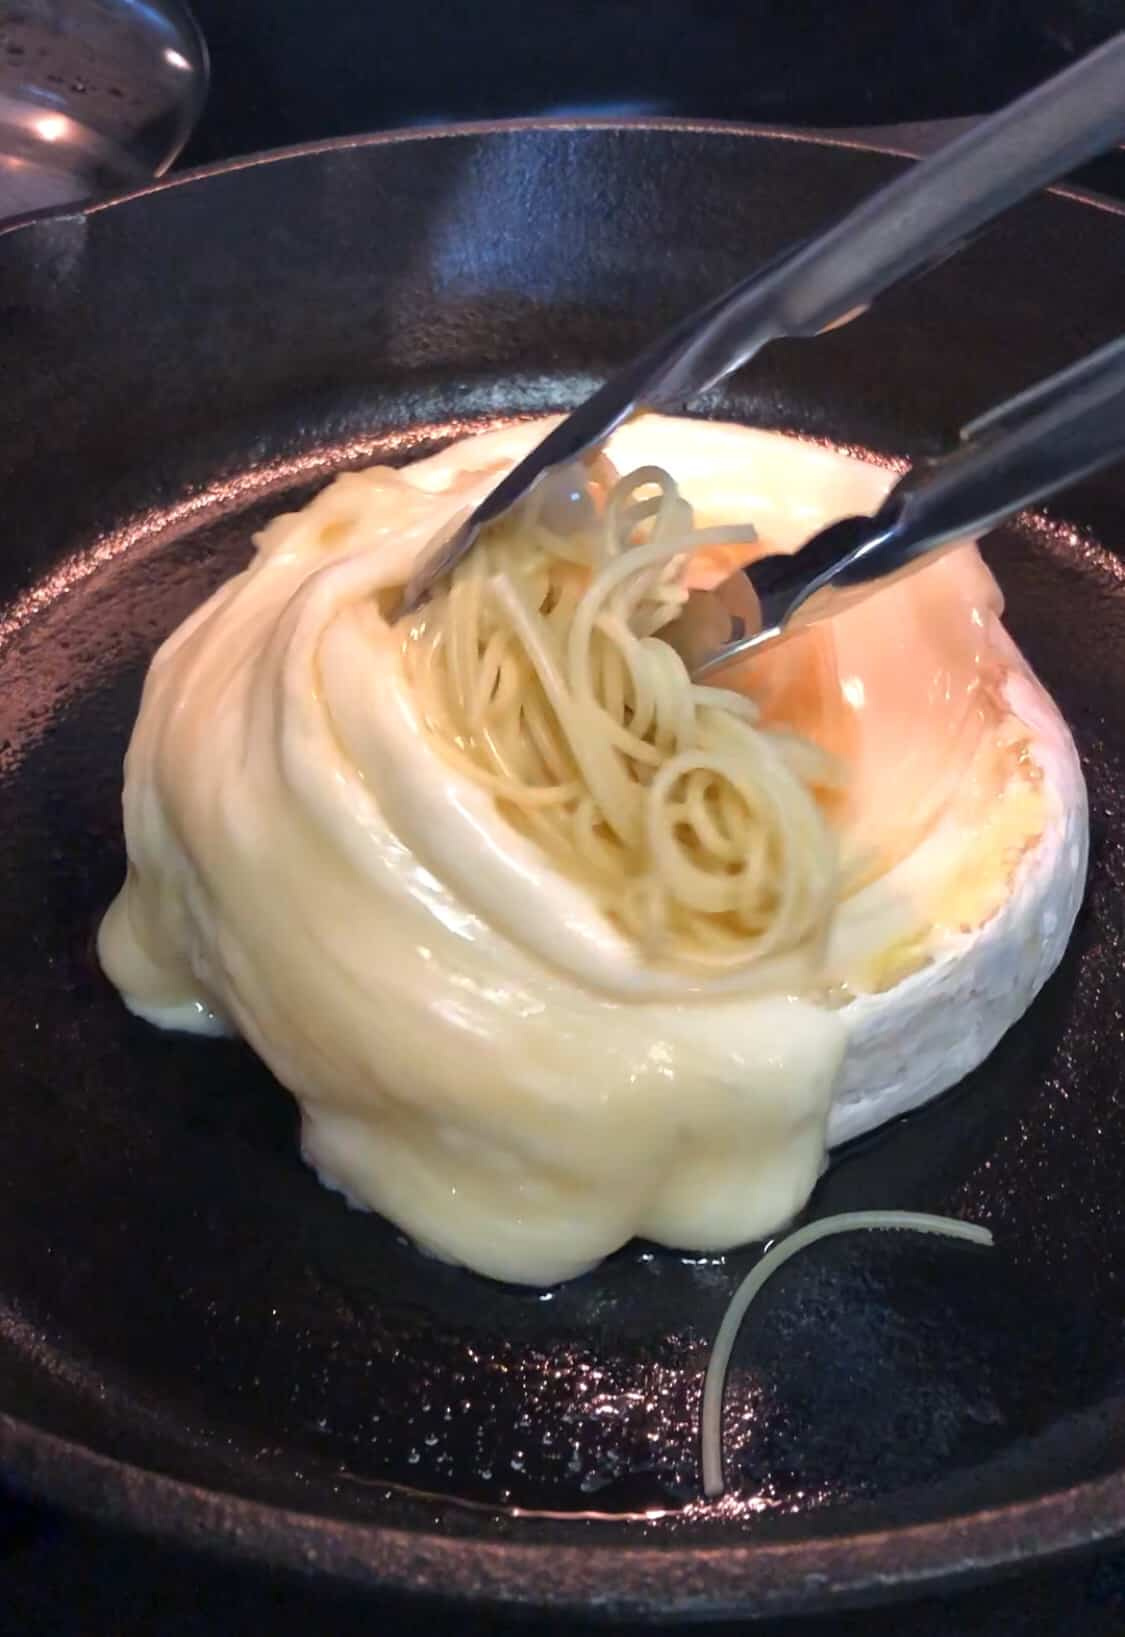 Tongs twirling spaghetti in brie cheese